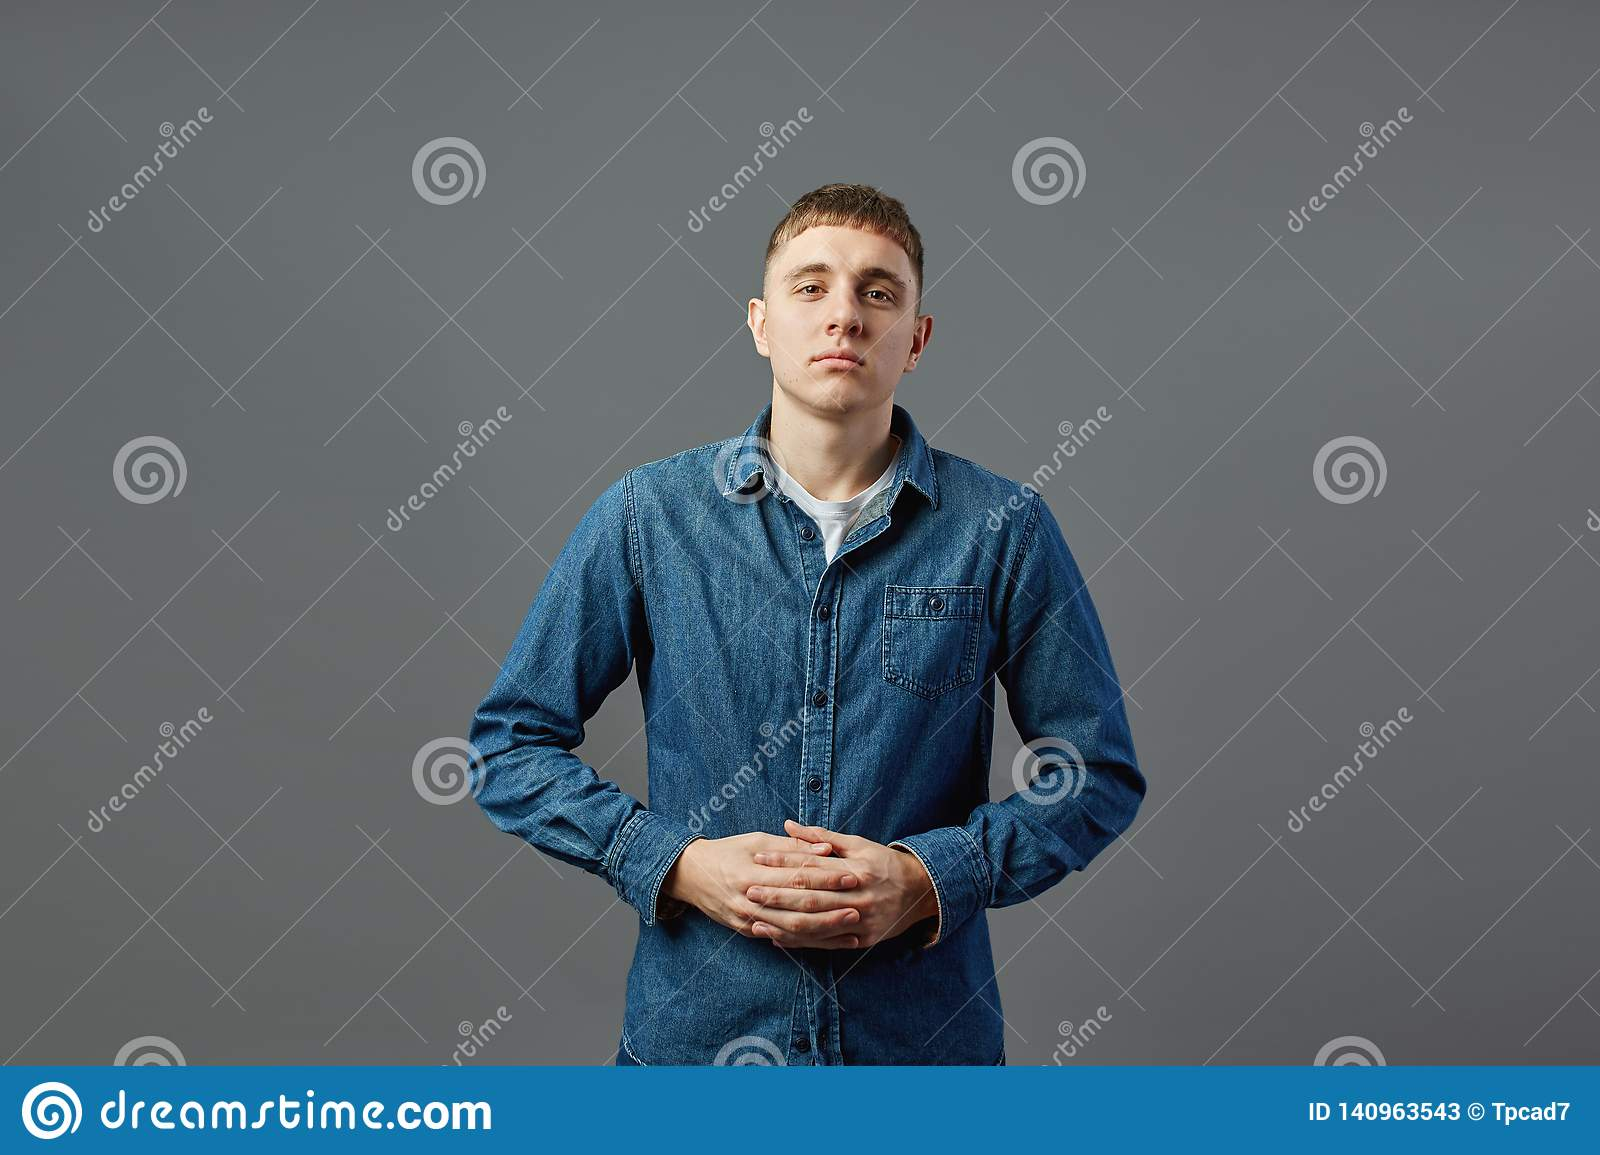 Guy dressed in a white t-shirt, jeans and jeans shirt standing with his arms folded in the studio on the gray background